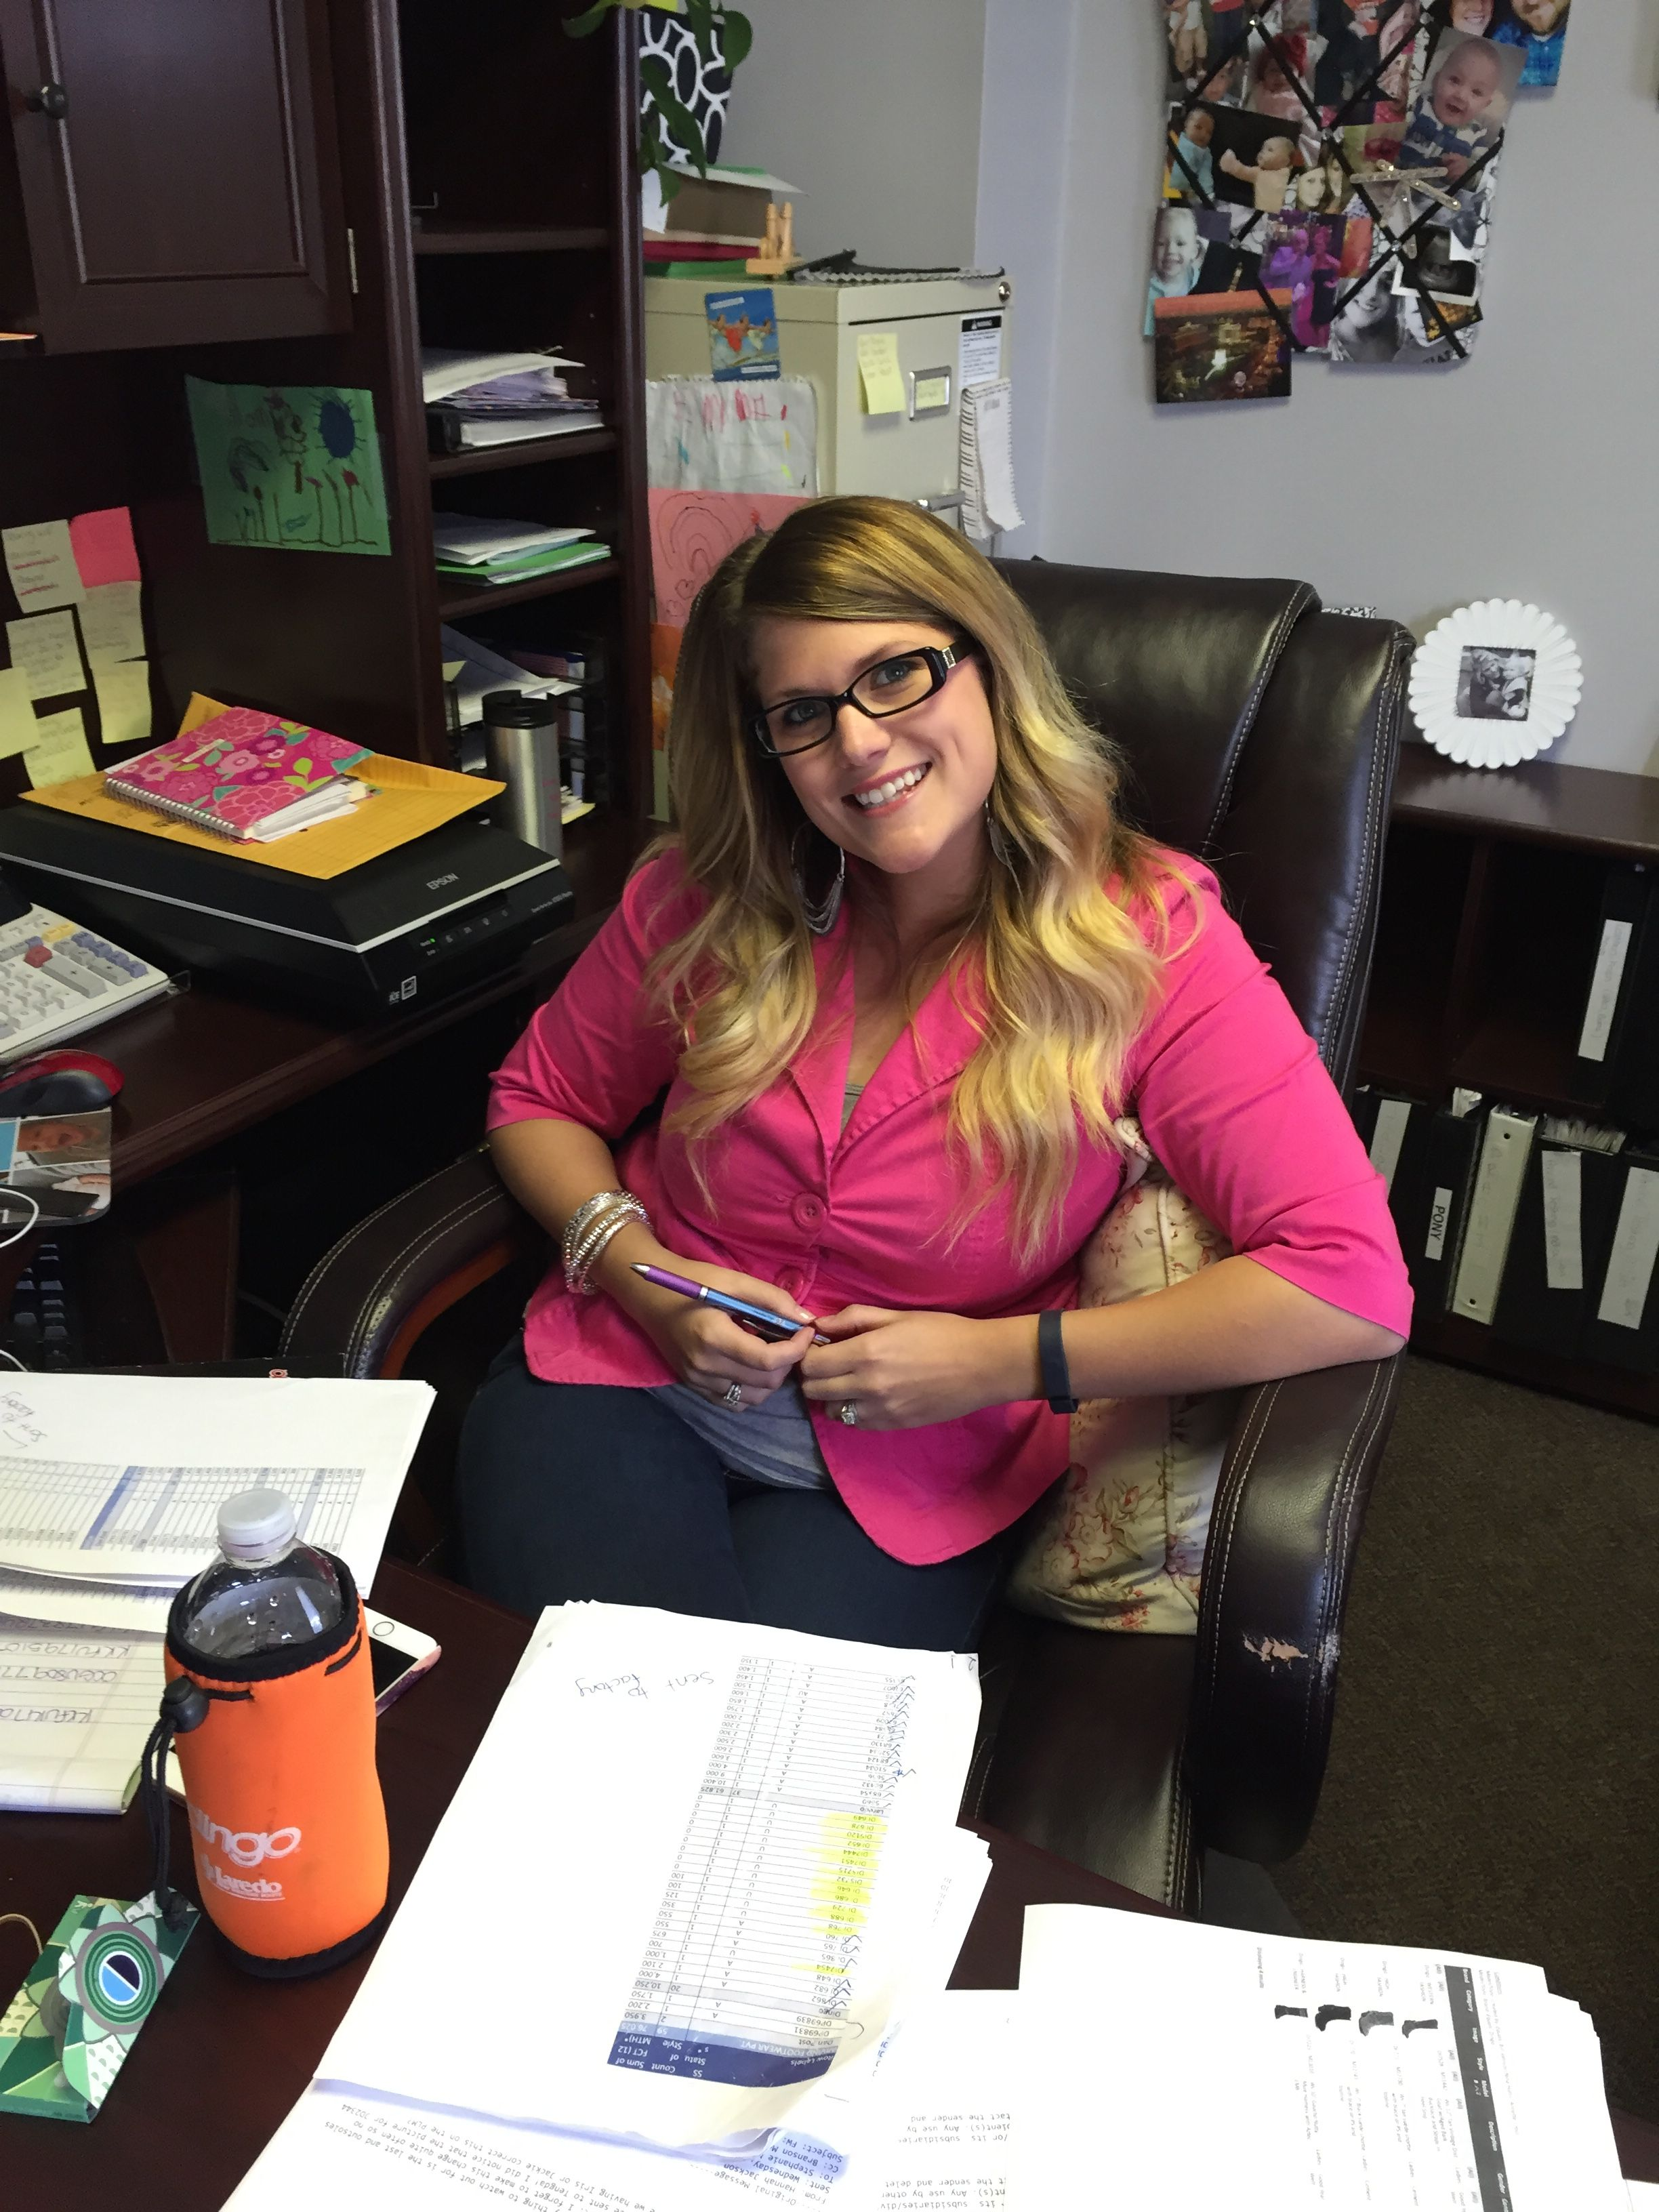 Hannah J., 2015 Pretty In Pink Day at @danpostbootco in support of #BreastCancerAwareness